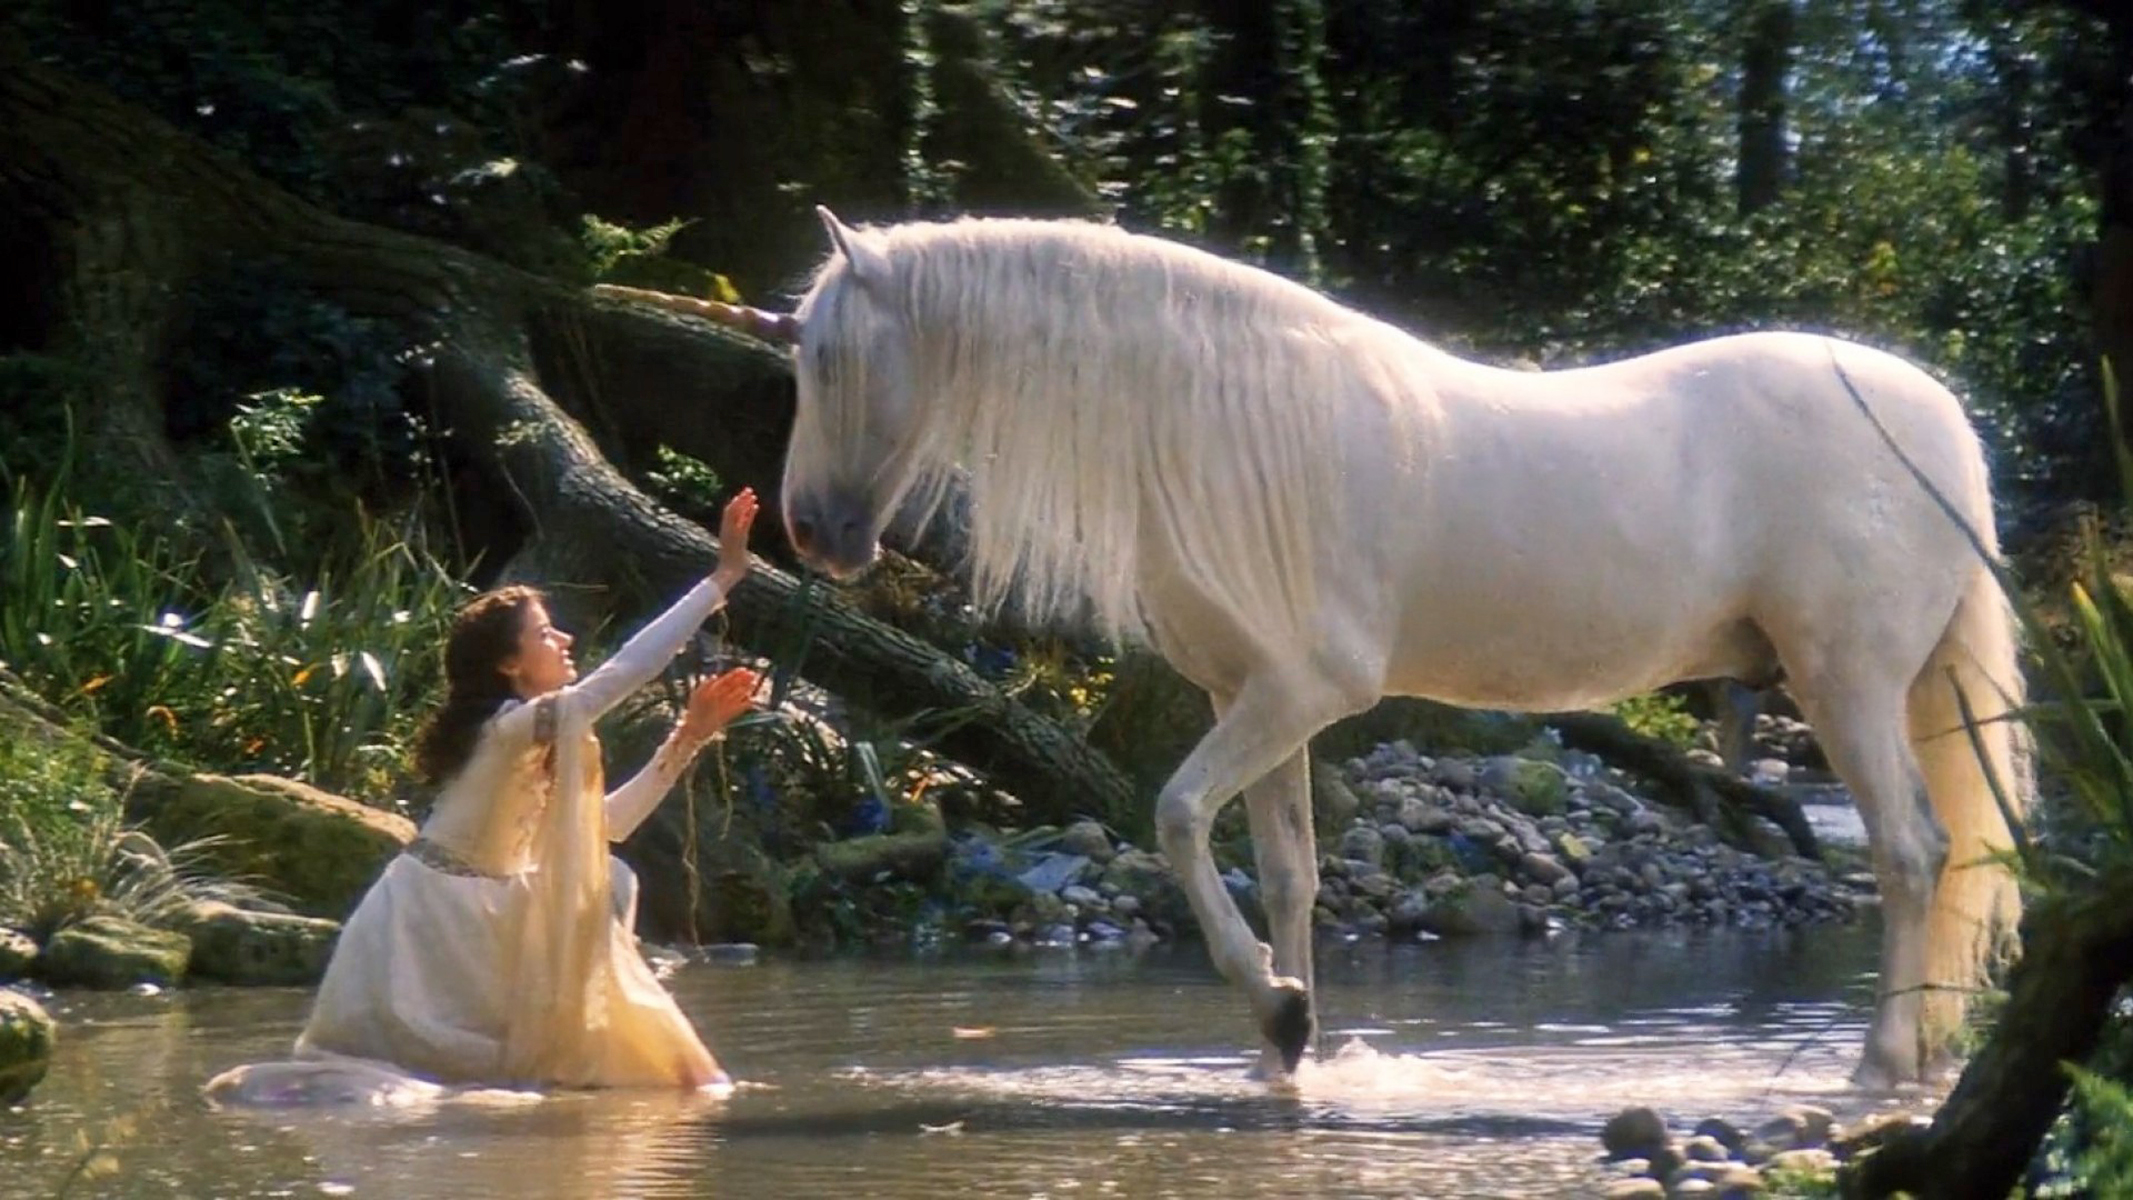 3d Waterfall Live Wallpaper Legends Of The Unicorn White Horse Girl And Horse Unicorn